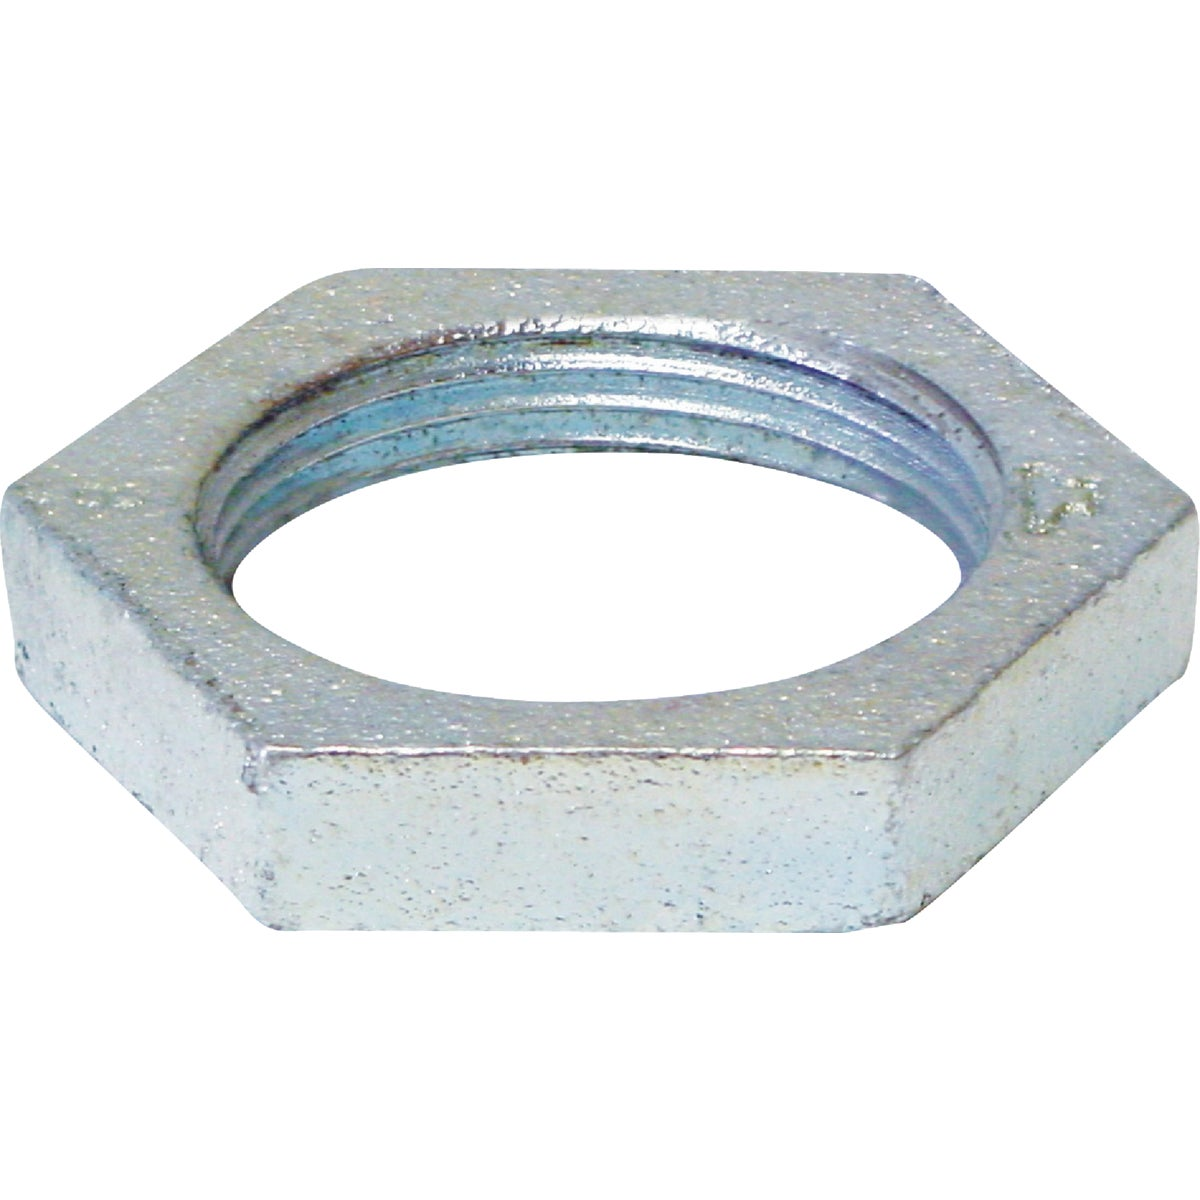 "1-1/4"" GALV LOCKNUT - 8700162657 by Anvil International"